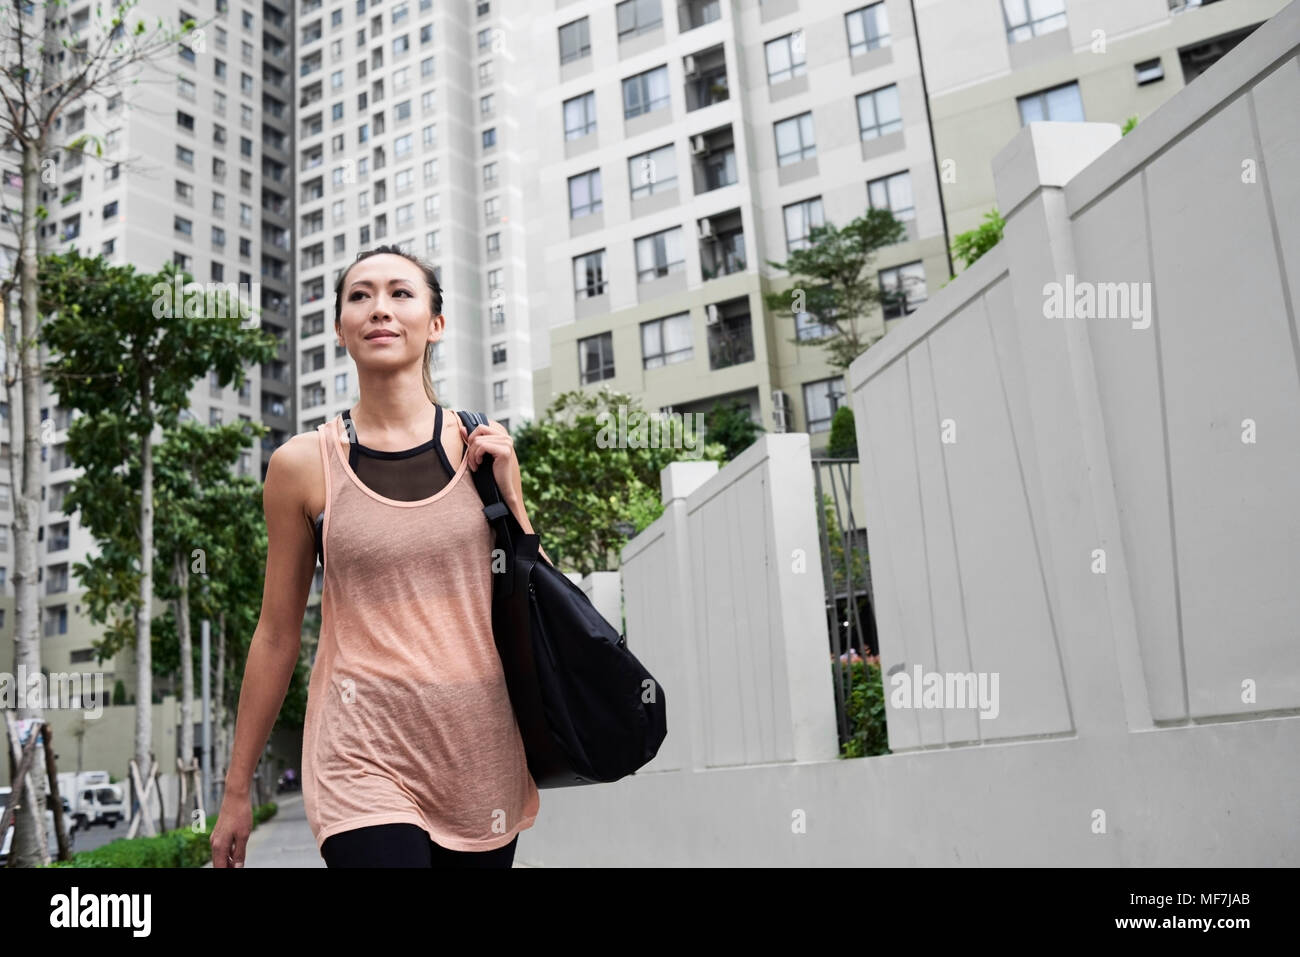 Confiant fit woman walking in environnement urbain Photo Stock